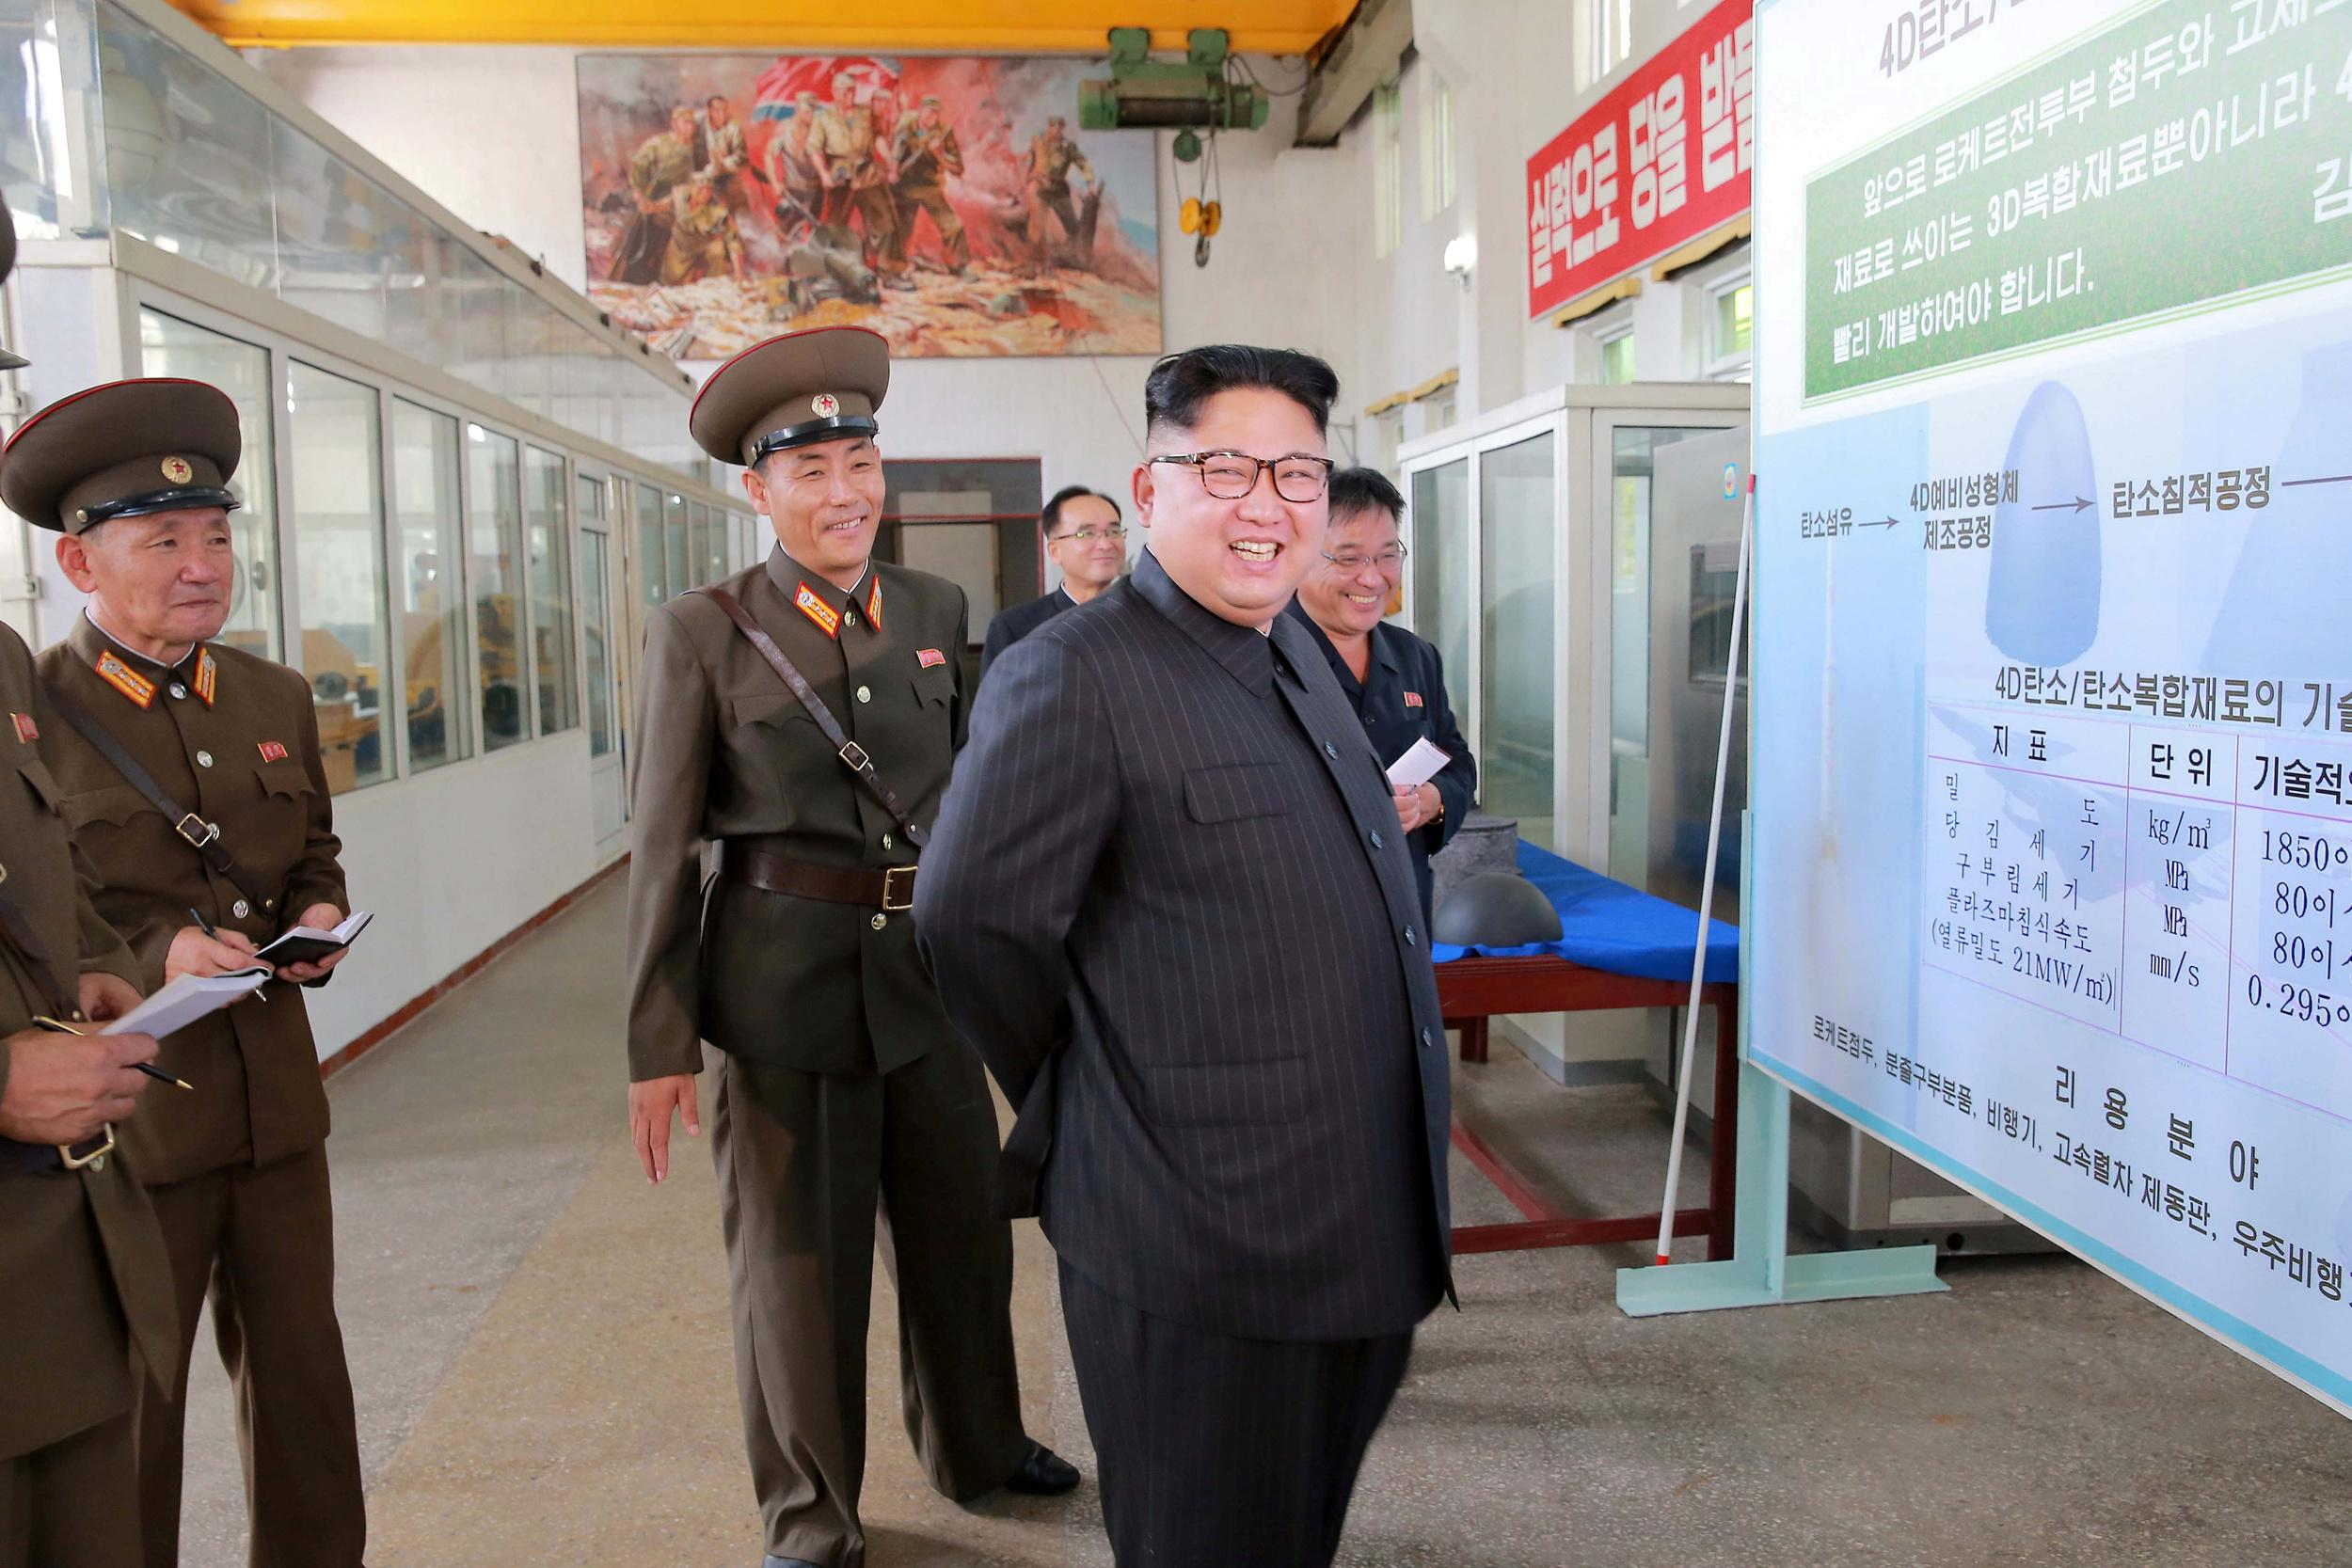 """<p><u><strong>NEW YEARS DAY MISSILE LAUNCH</strong></u></p>  <p>On January 1, 2017, North Korea's leader Kim Jong Un warned that anintercontinental ballistic missile (ICBM) was<a href=""""https://www.aol.com/article/news/2017/01/01/north-korea-kim-jong-un-says-an-intercontinental-ballistic-missile-in-final-stages/21645302/"""" target=""""_blank"""">in the 'final stages'</a>of development.</p>  <p>The nation said it could conduct a missile test-launch<a href=""""https://www.aol.com/article/news/2017/01/09/n-korea-says-can-test-launch-icbm-at-any-time/21650827/"""" target=""""_blank""""> 'anytime and anywhere'</a>.</p>  <p>On February 12, North Korea tested a<a href=""""https://www.aol.com/article/news/2017/02/11/north-korea-tests-ballistic-missile-does-not-appear-to-be-icbm/21712090/"""" target=""""_blank"""">ballistic missile,</a>but it didn't appear to be an ICBM due to its flight range.</p>"""